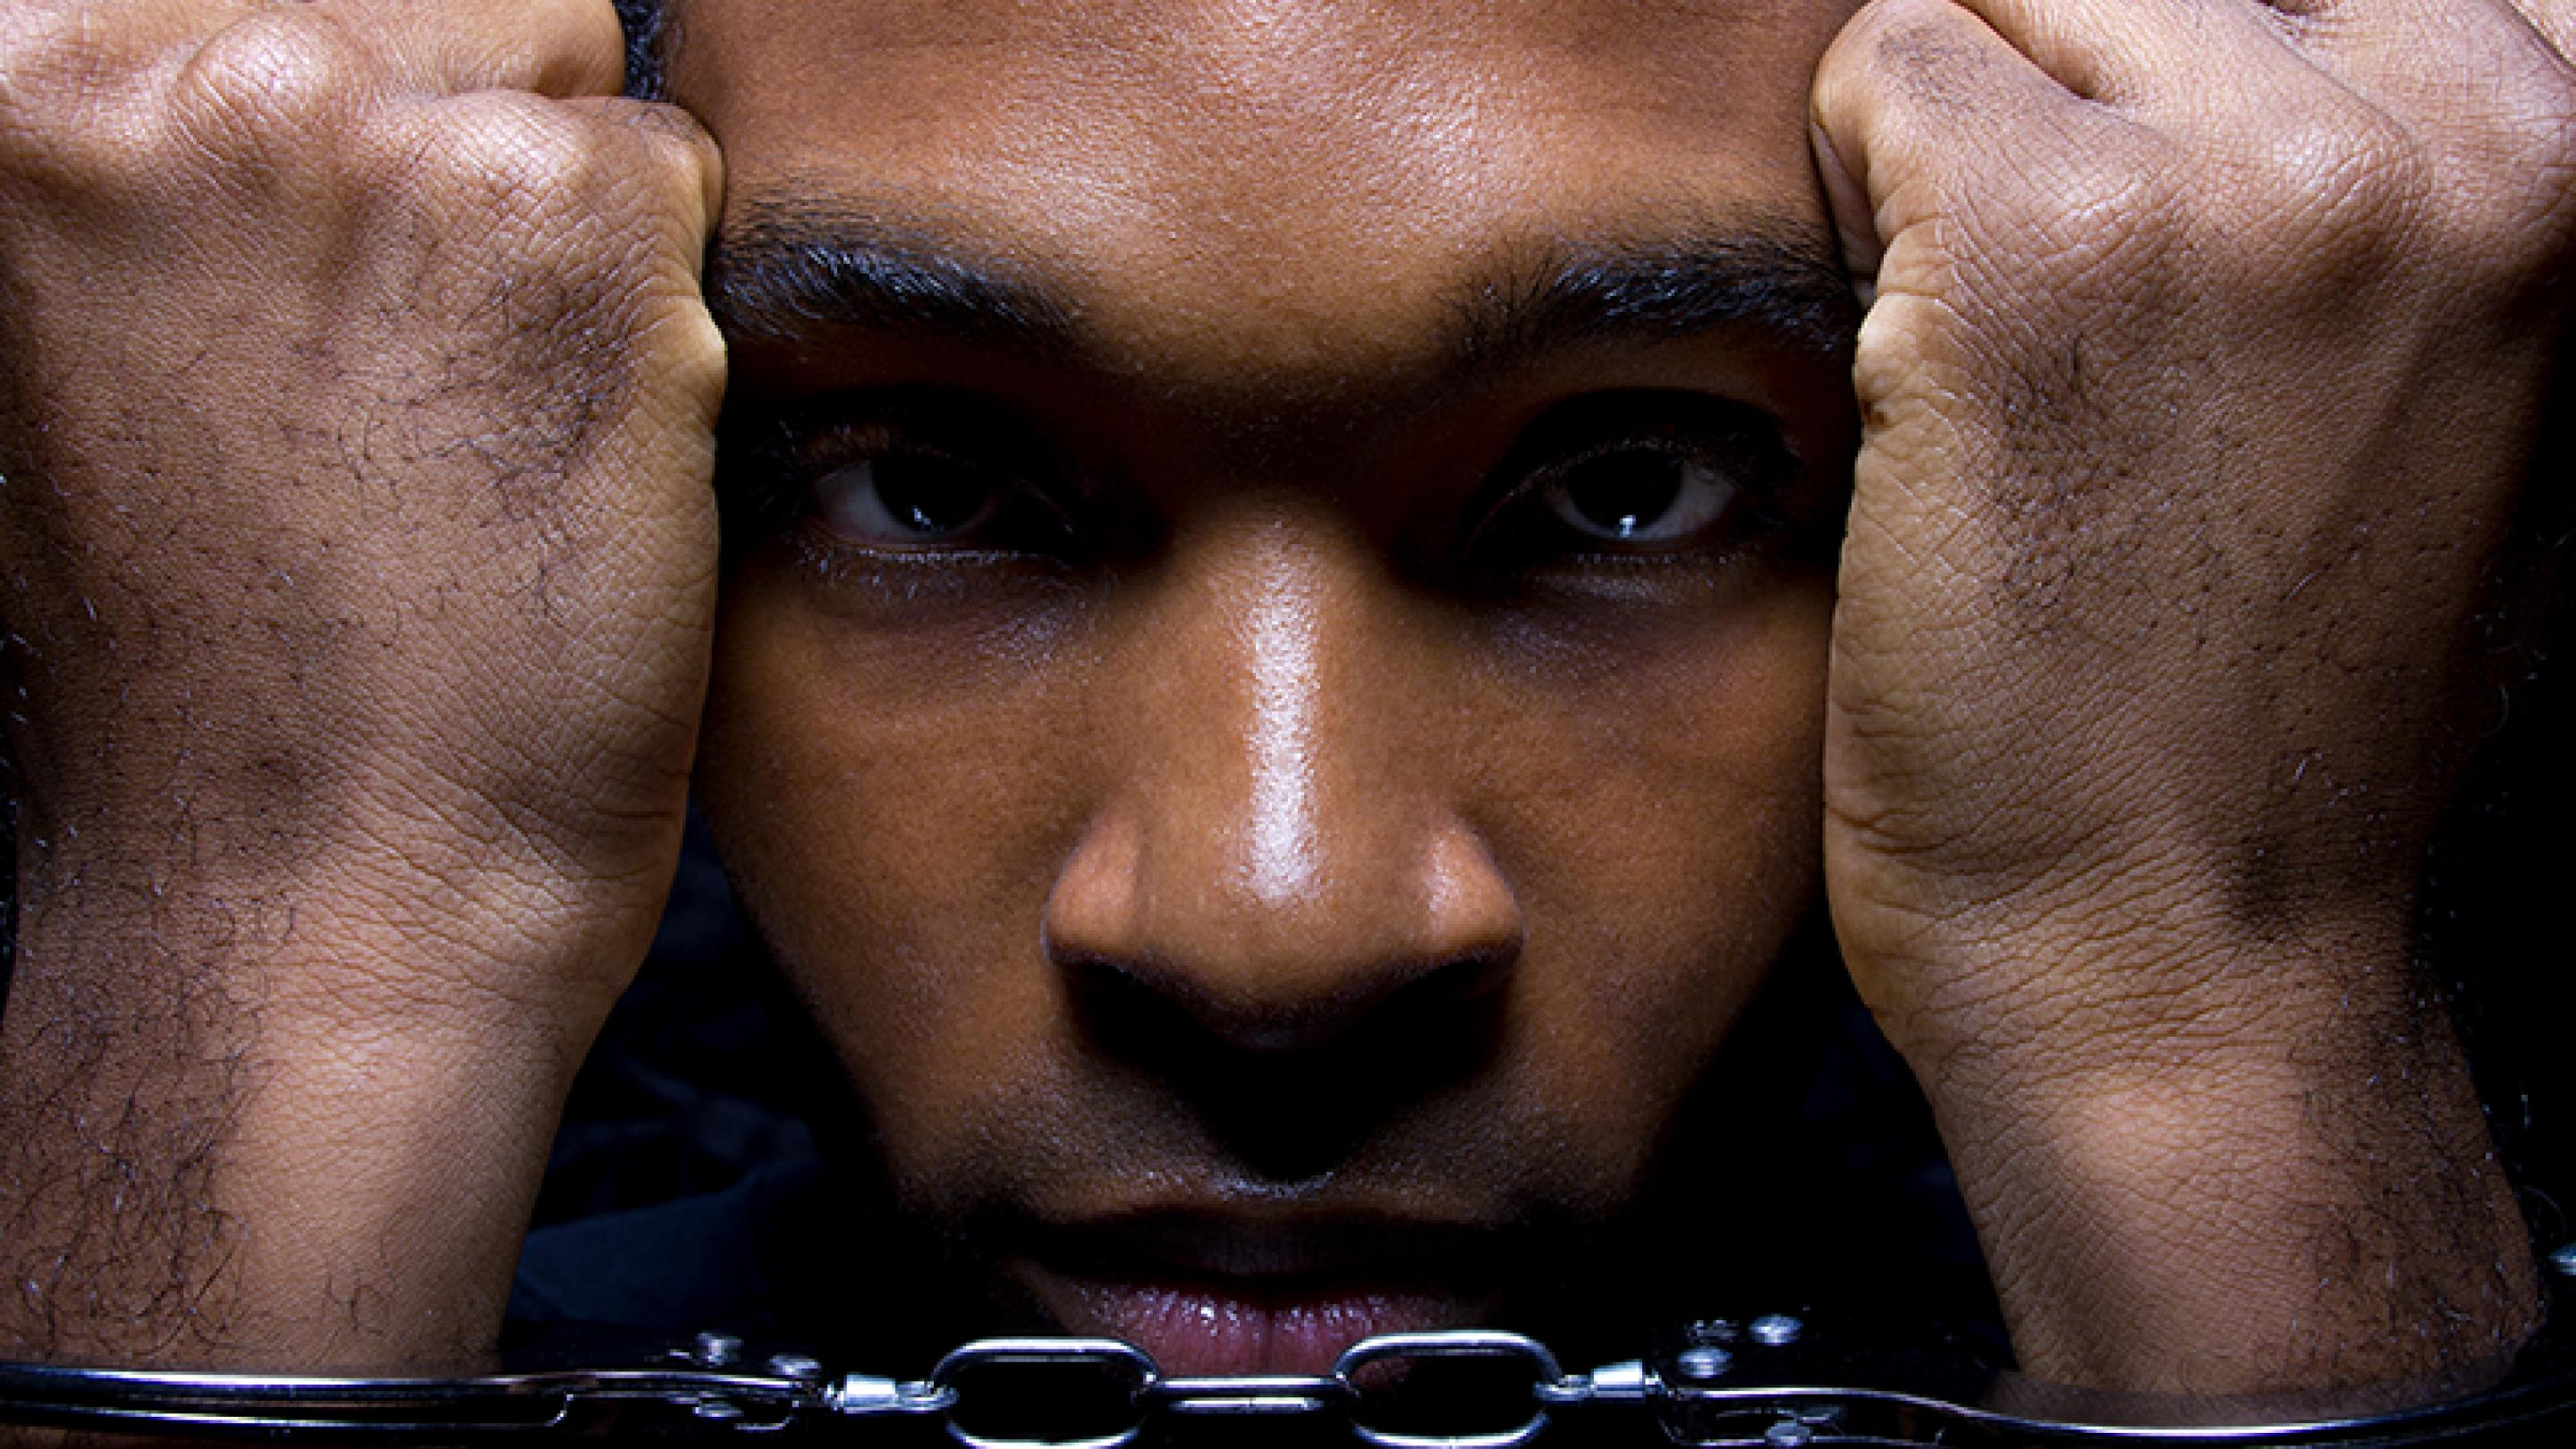 How Prison and Police Discrimination Affect Black Sexual Minority Men's Health